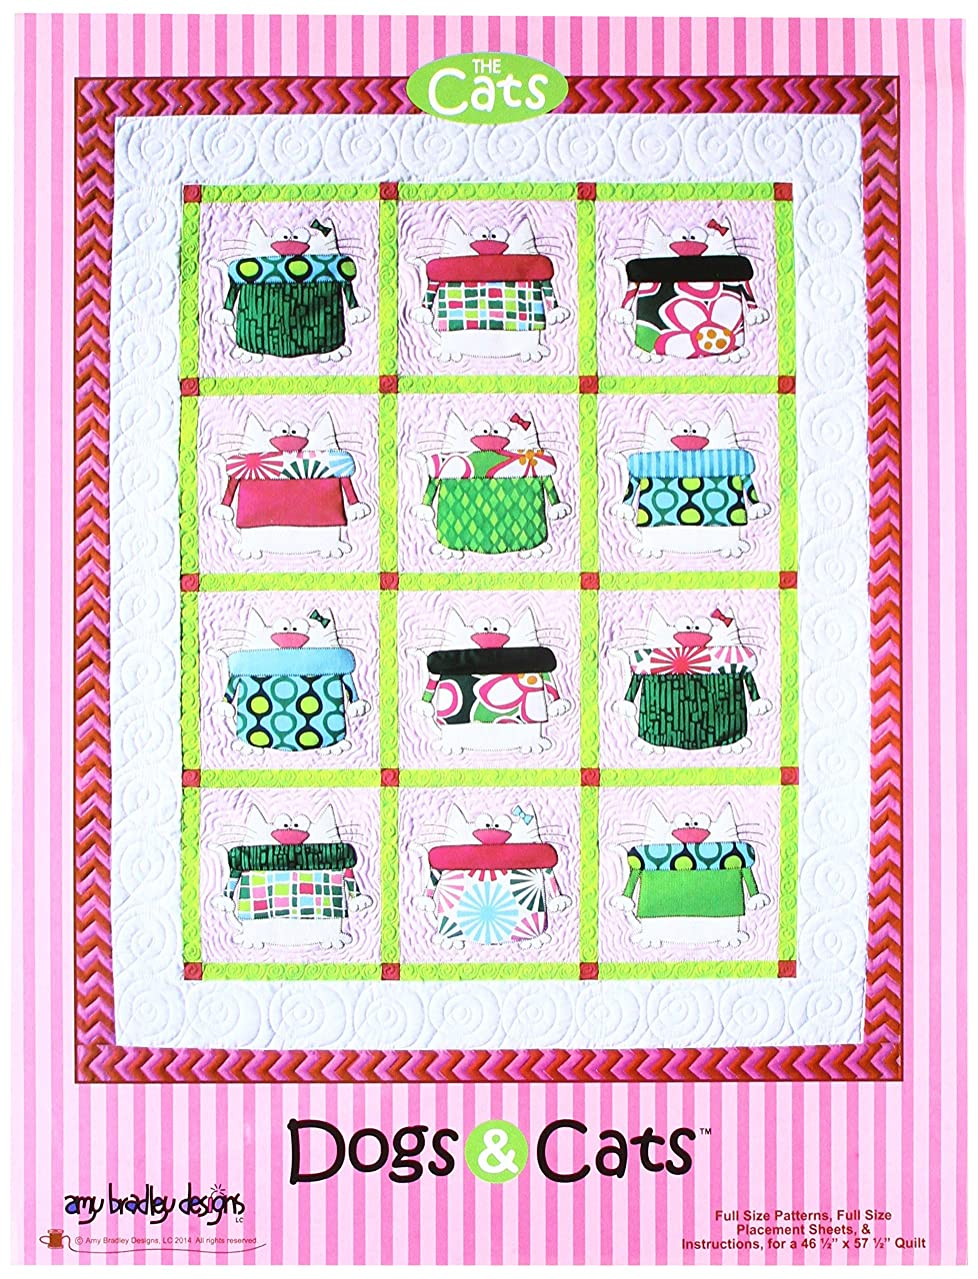 Amy Bradley Designs ABD266 Dogs & Cats Quilt Pattern